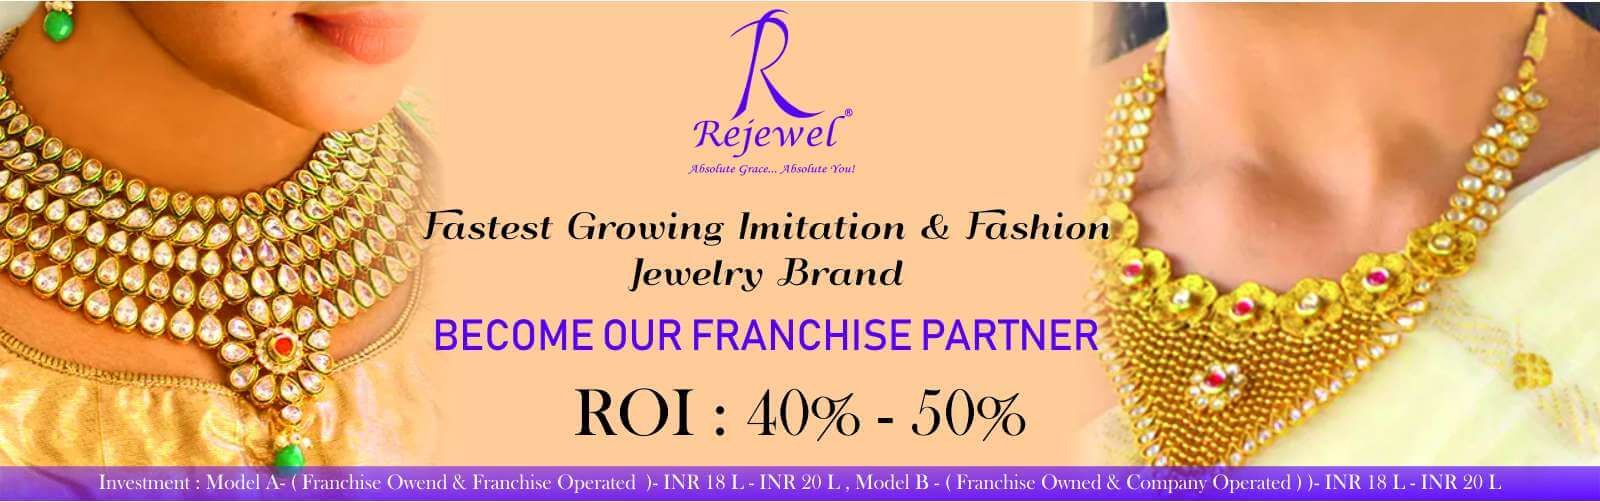 admin/uploads/brand_registration/Rejewel ( A Growing Imitation & Fashion Jewelry Brand )